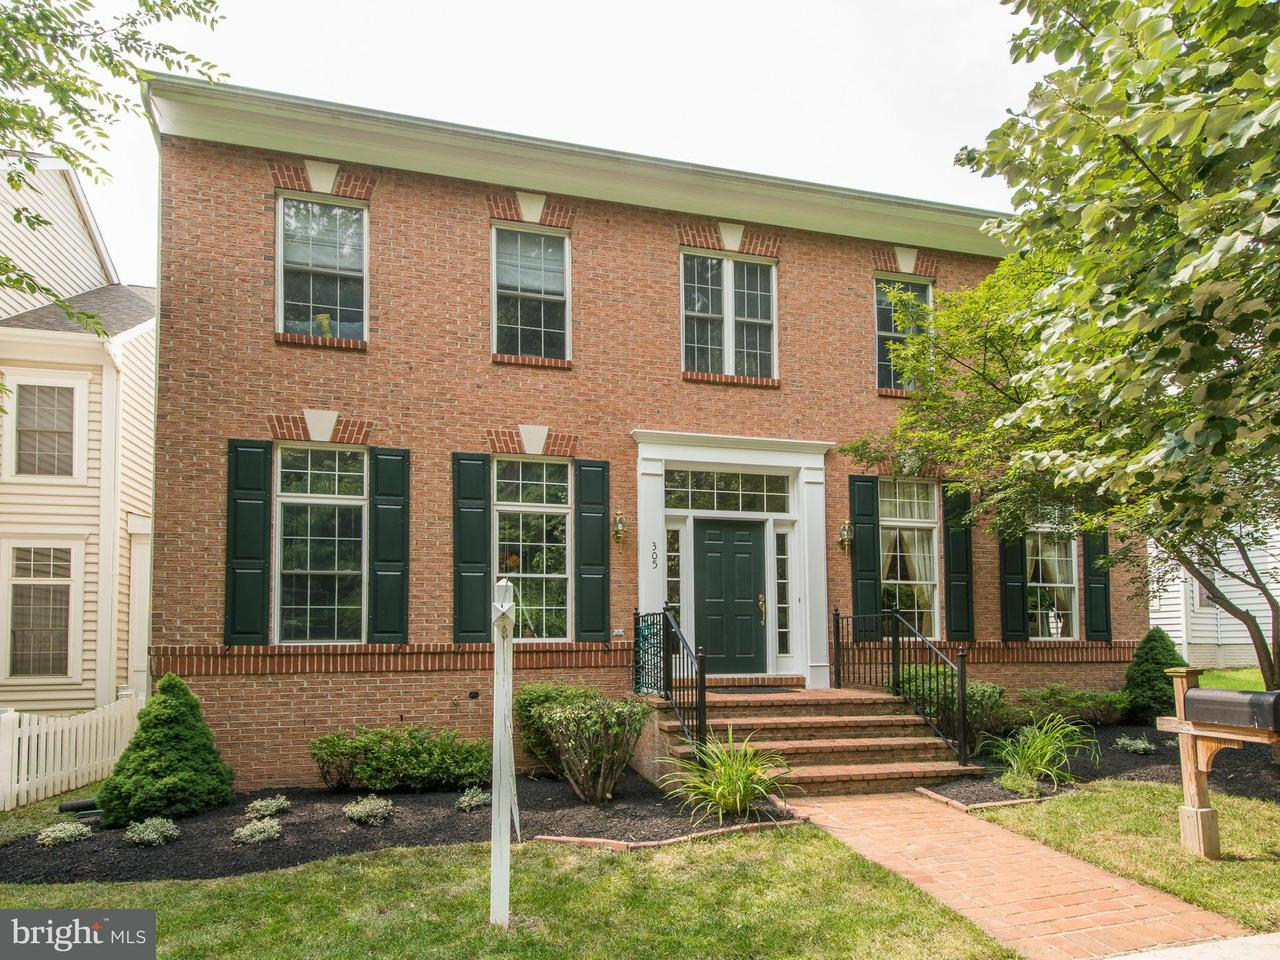 Single Family Home for Sale at 305 Silver King Lane 305 Silver King Lane Rockville, Maryland 20850 United States